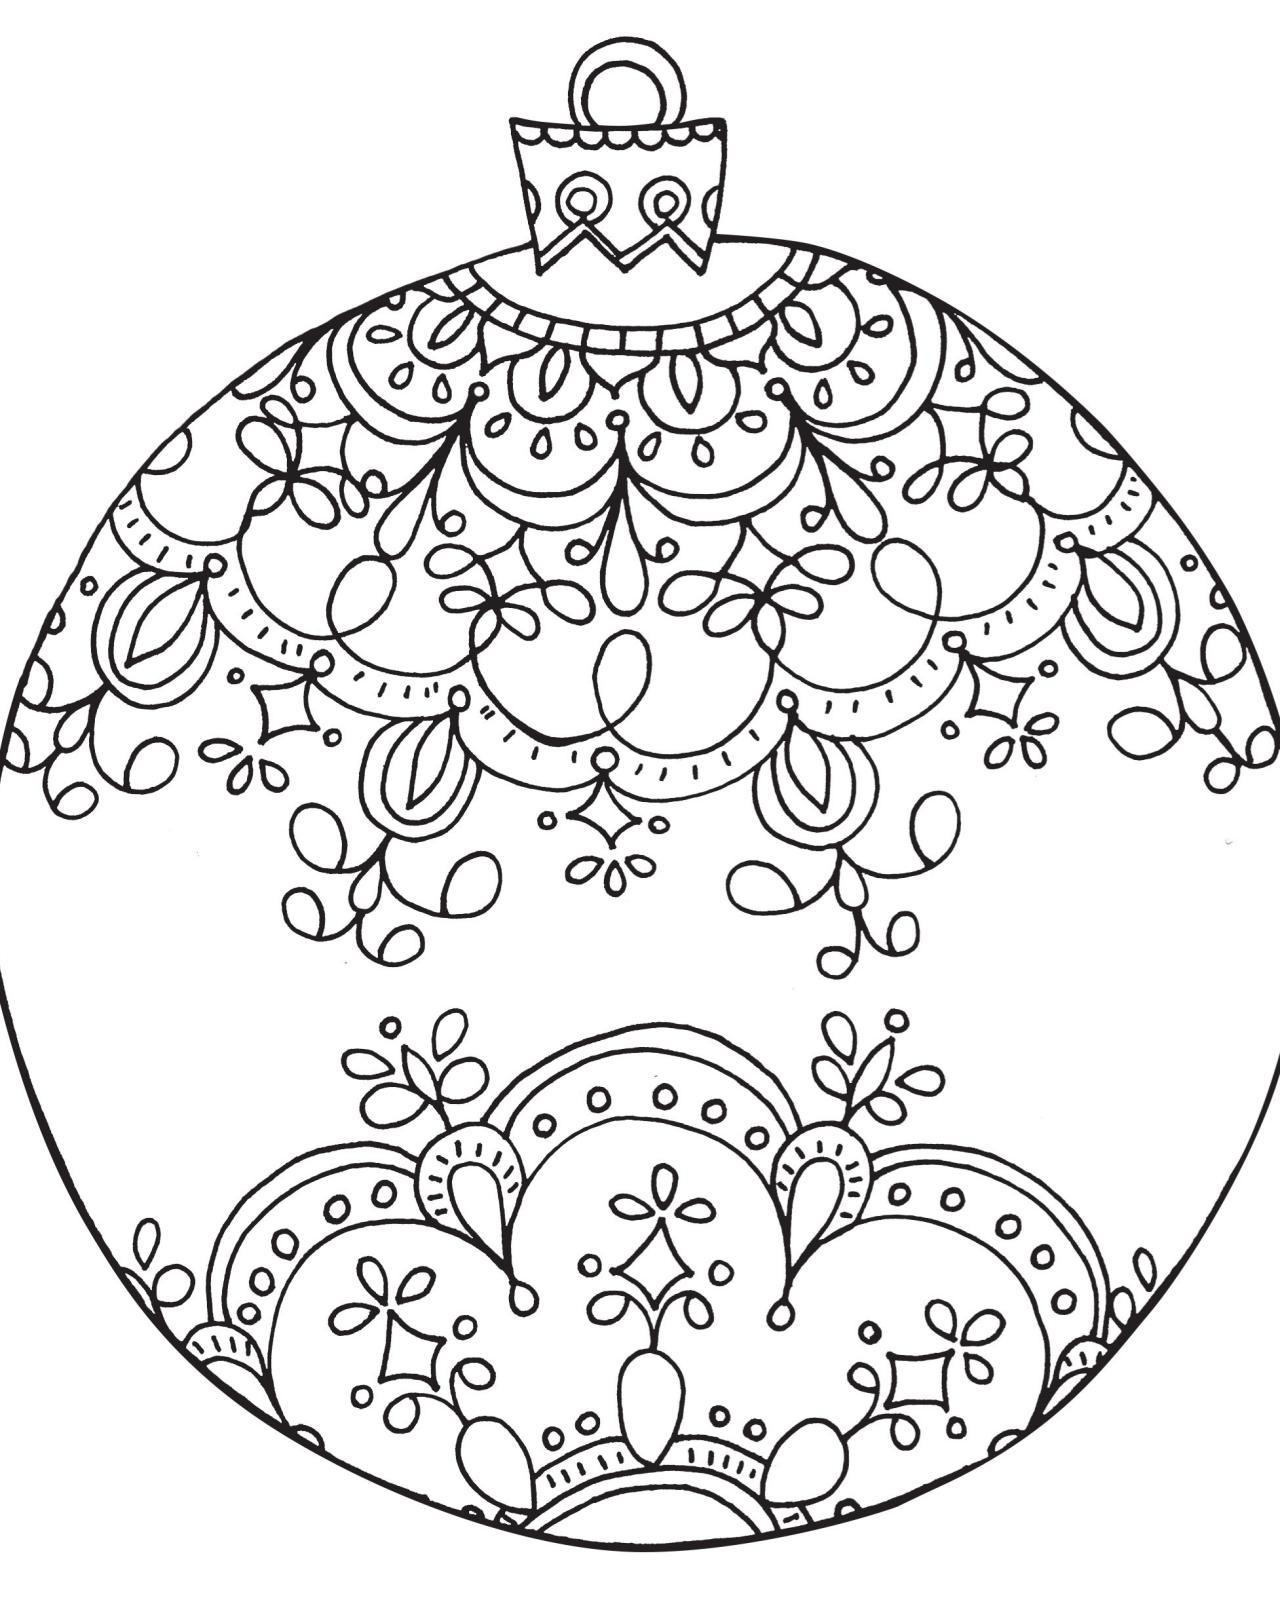 Best Christmas Mandala Coloring Pages Printable Printable Pages Gallery Of Modern Intricate Mandala Coloring Pages Coloring for Good Mandala to Print